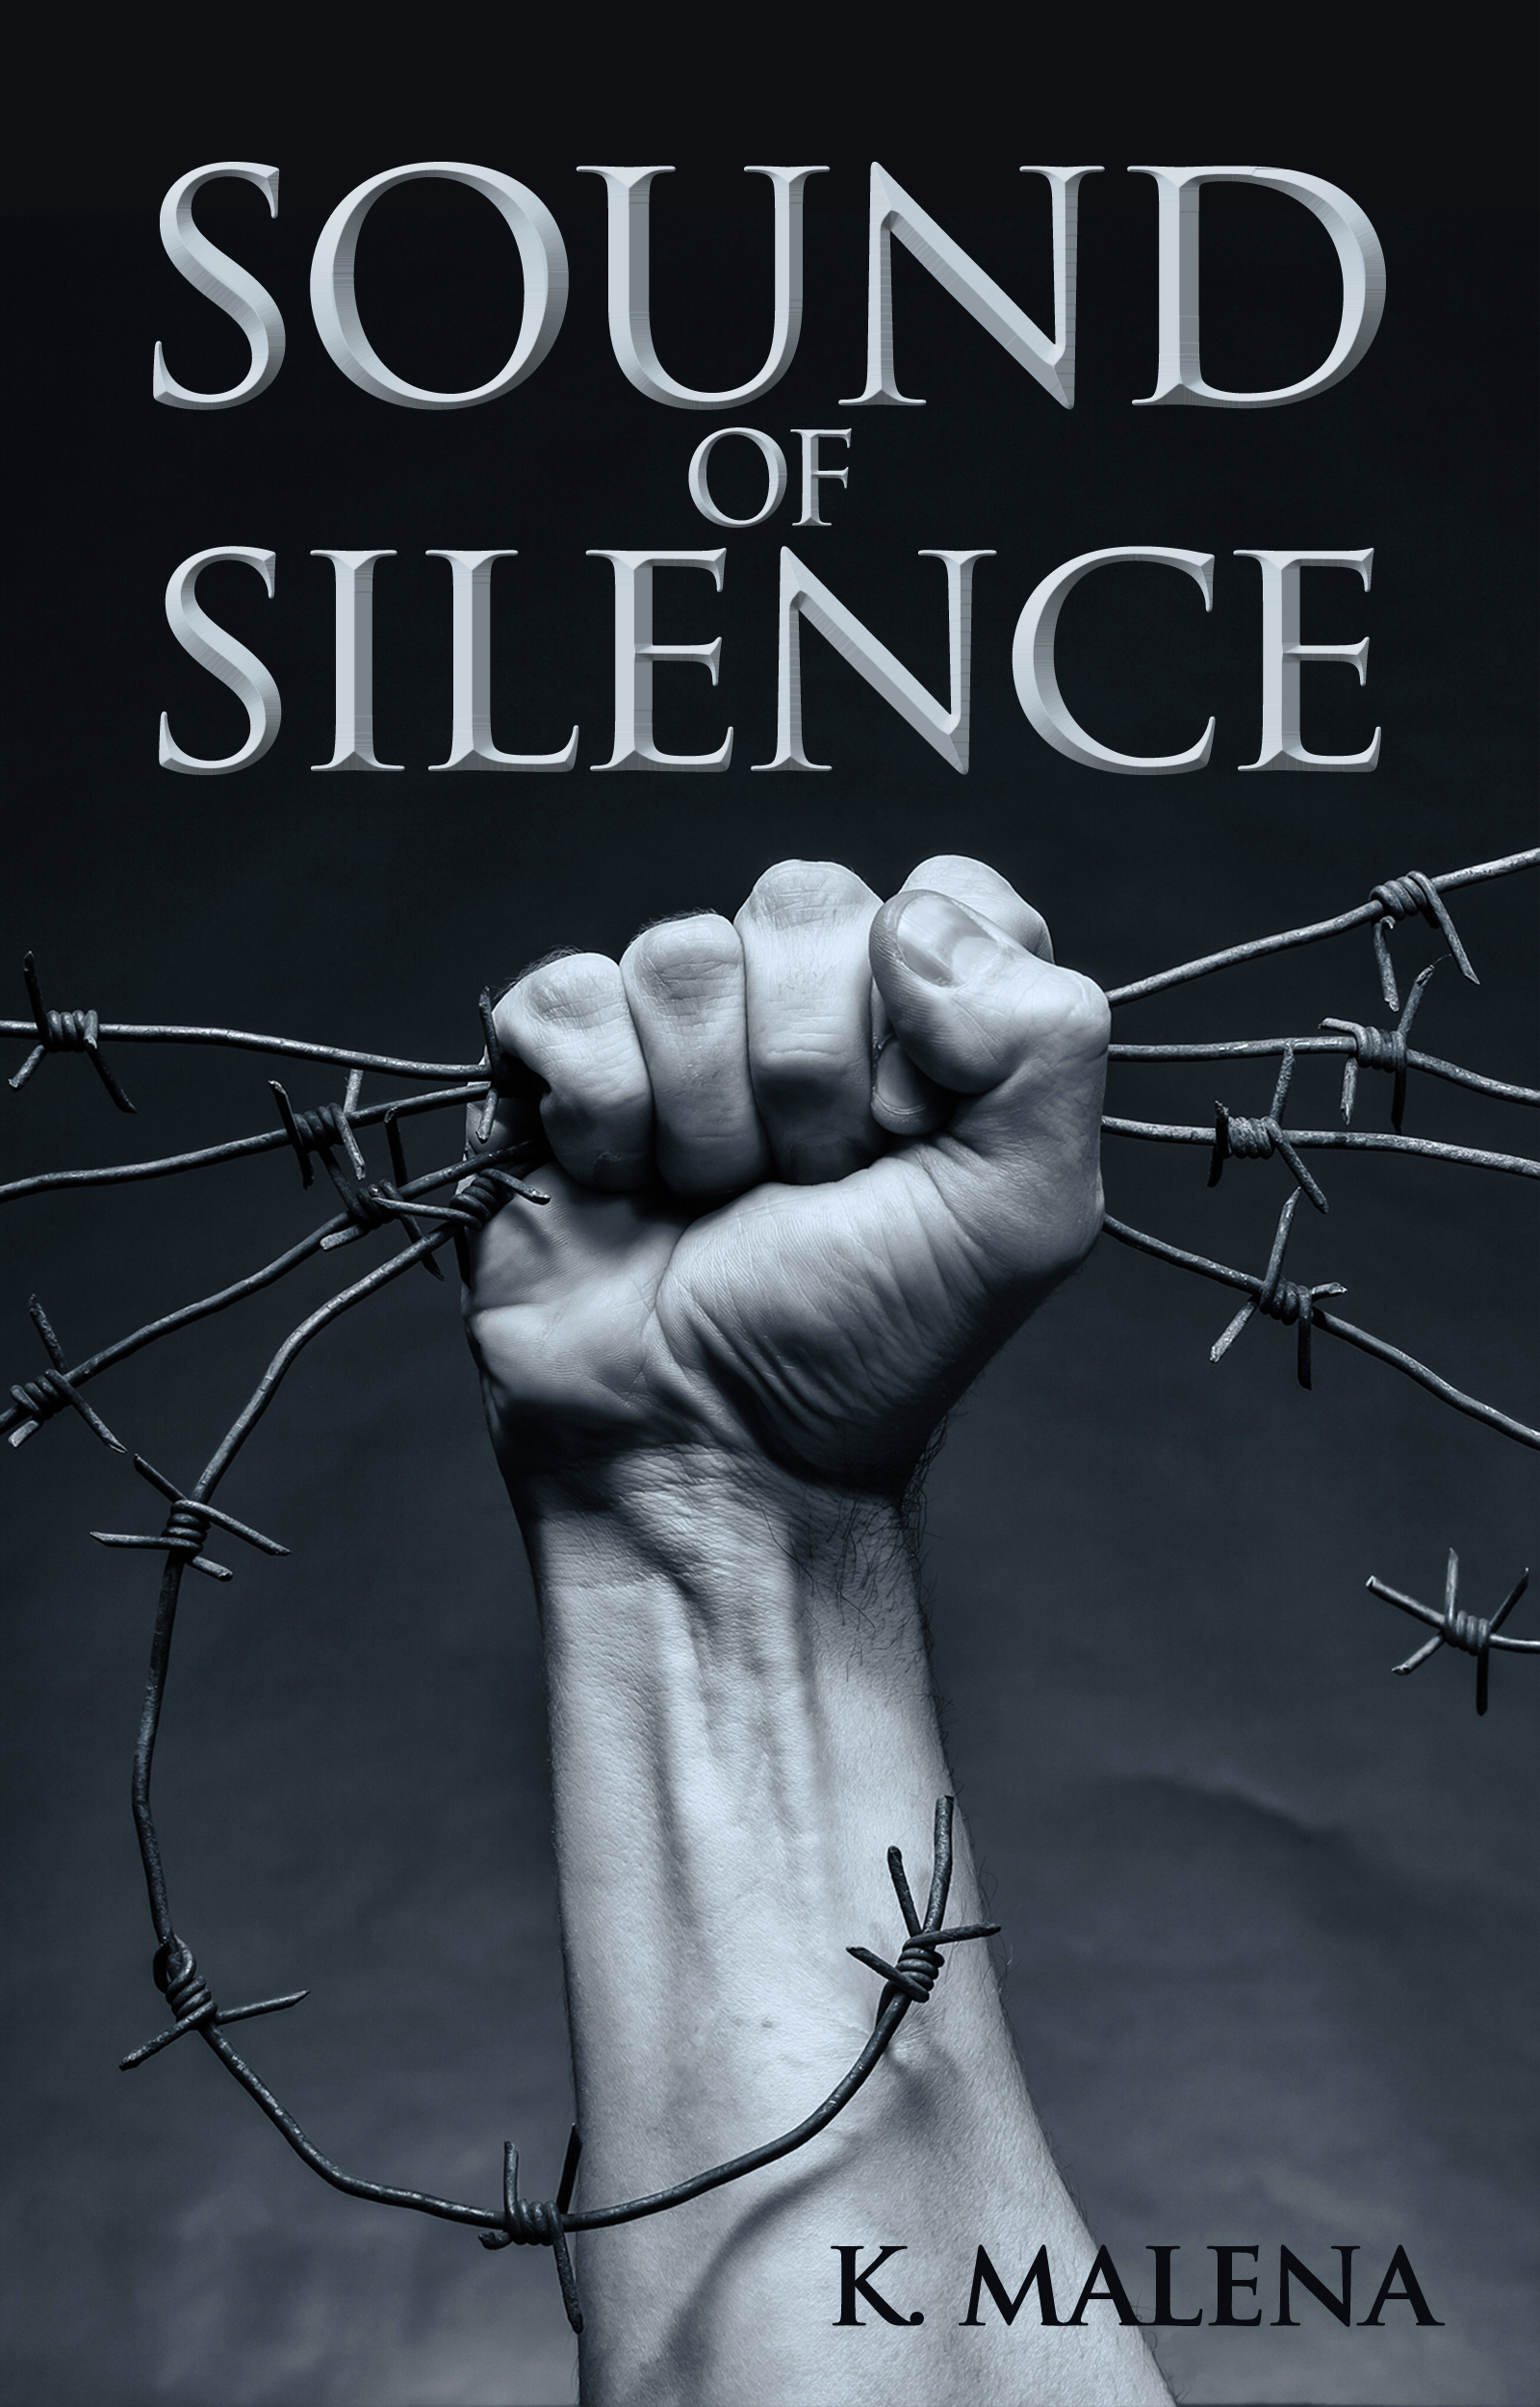 sounds of silence essay The sounds of silence in prison in the 1800s, philadelphia built a prison that isolated inmates so they could meditate and become genuinely penitent.